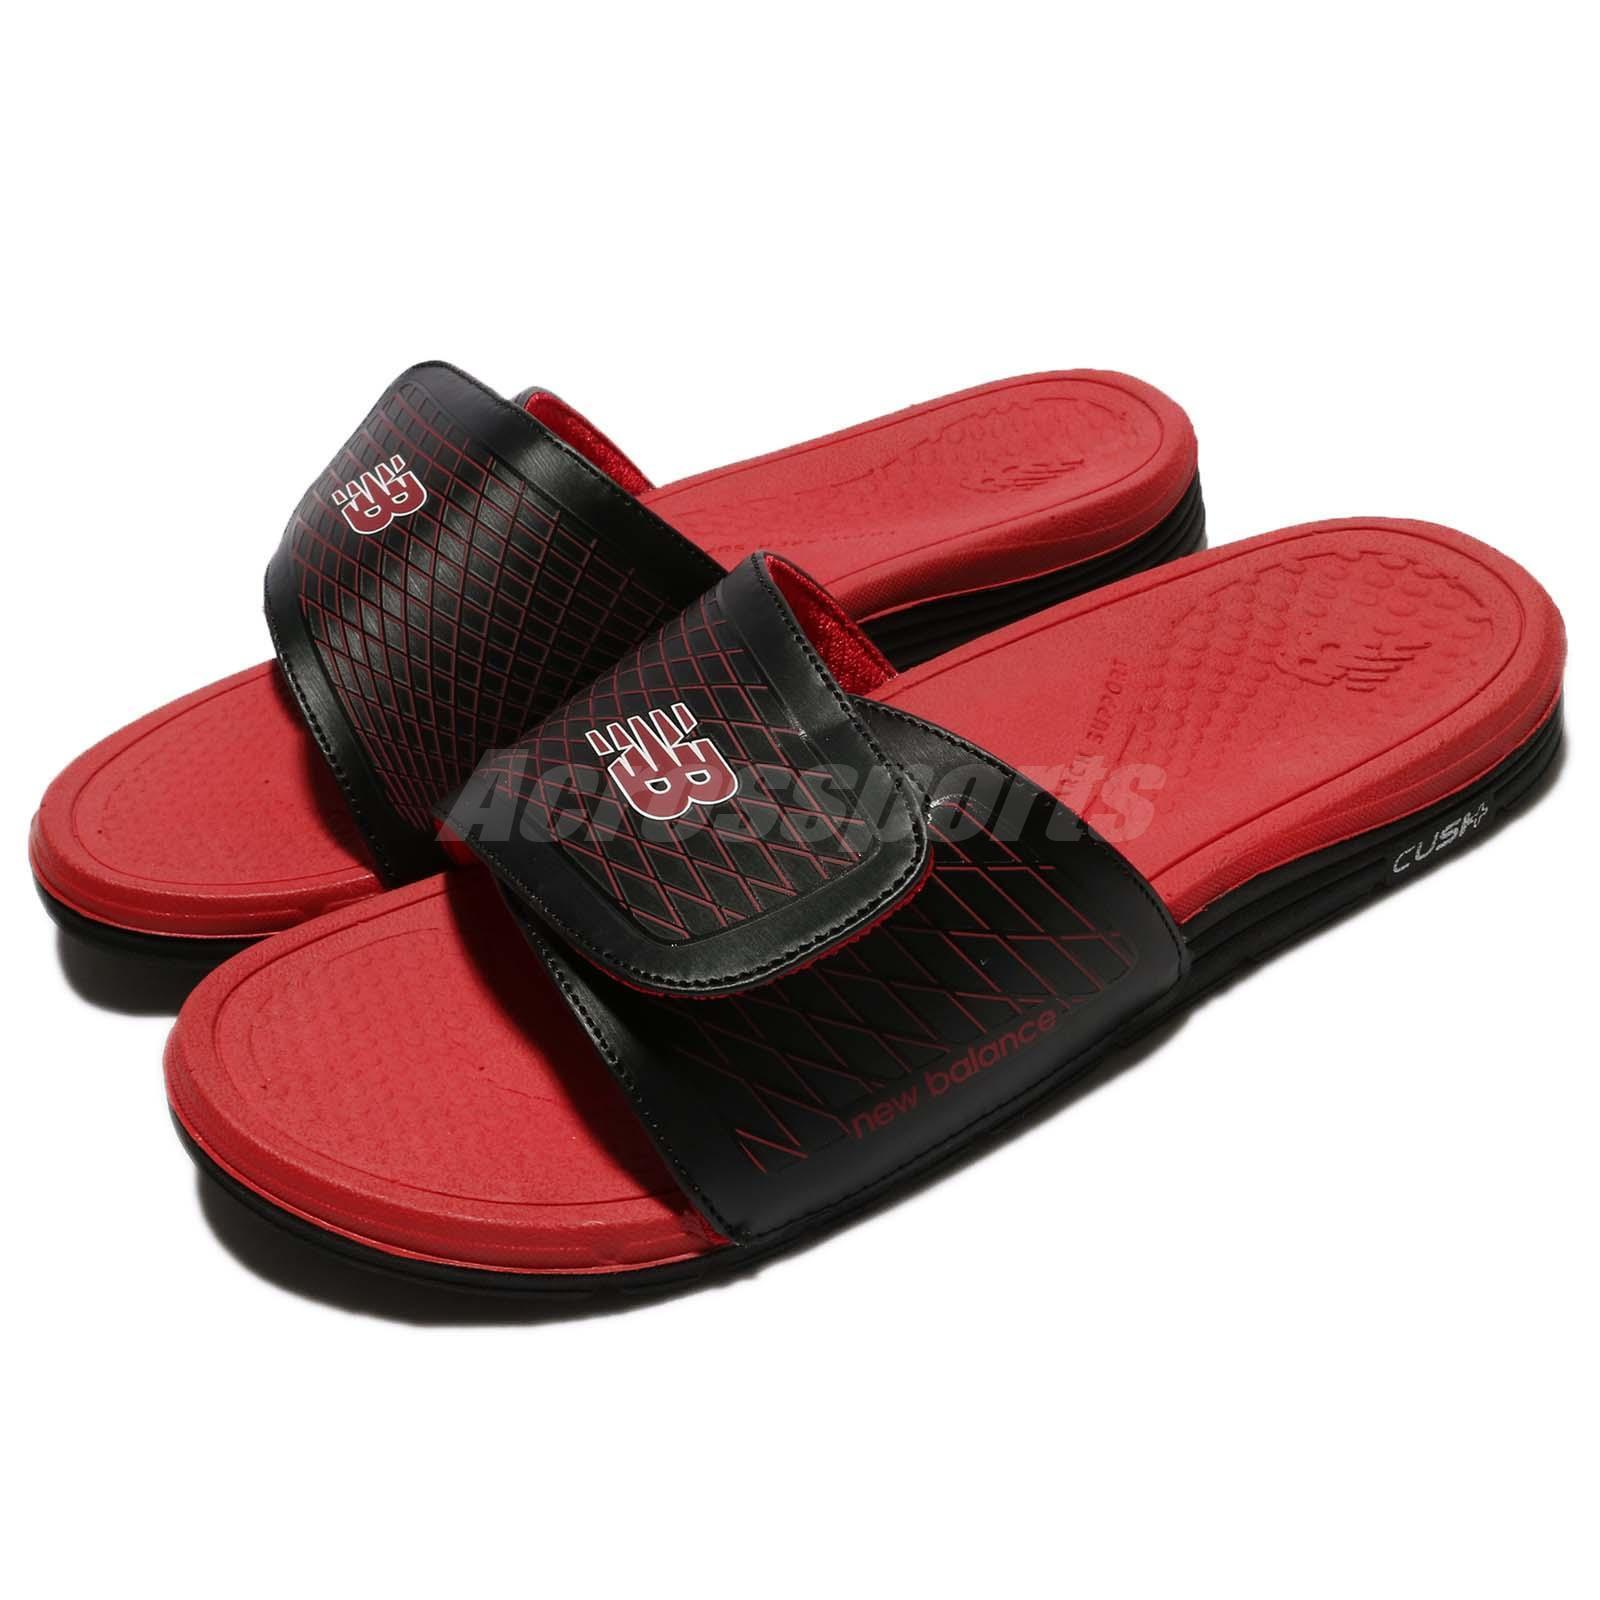 New Balance M3064BRD D Red Black Men Sports Sandal Slide Slippers M3064BRDD